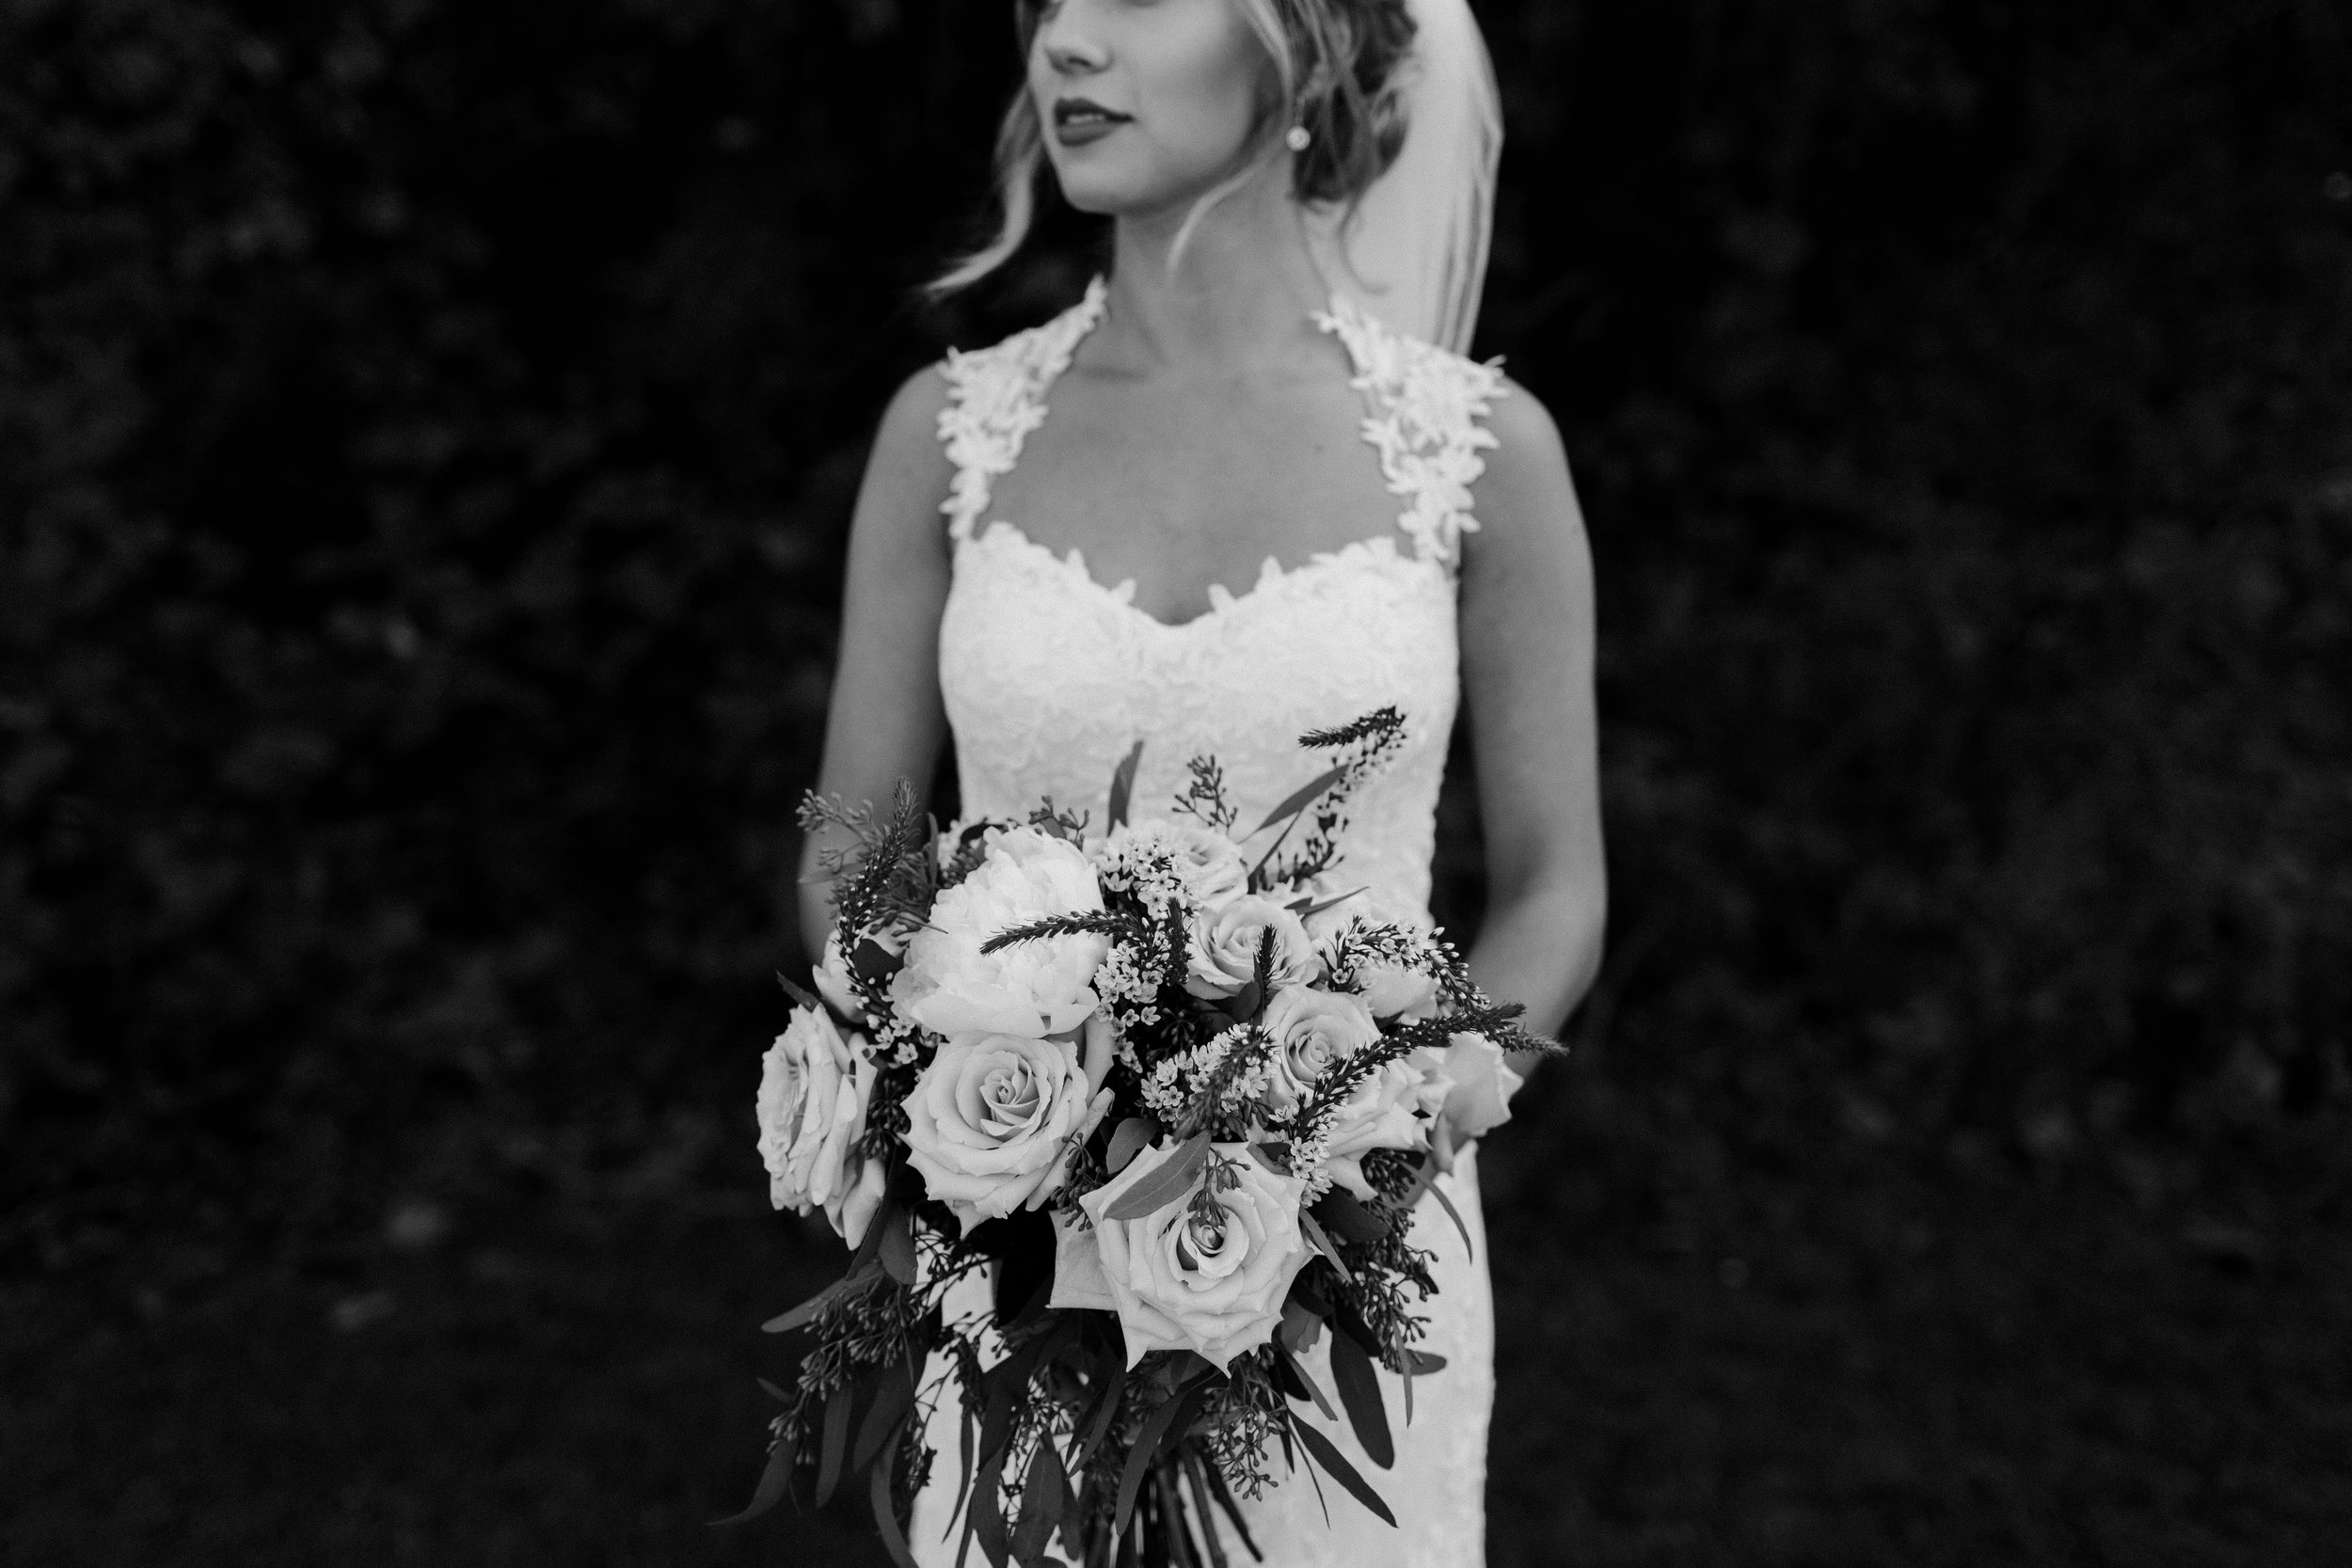 cailin+hails_destination_wedding_fairhope_daphne_mobile_alabama_madisonrylee_0068.jpg